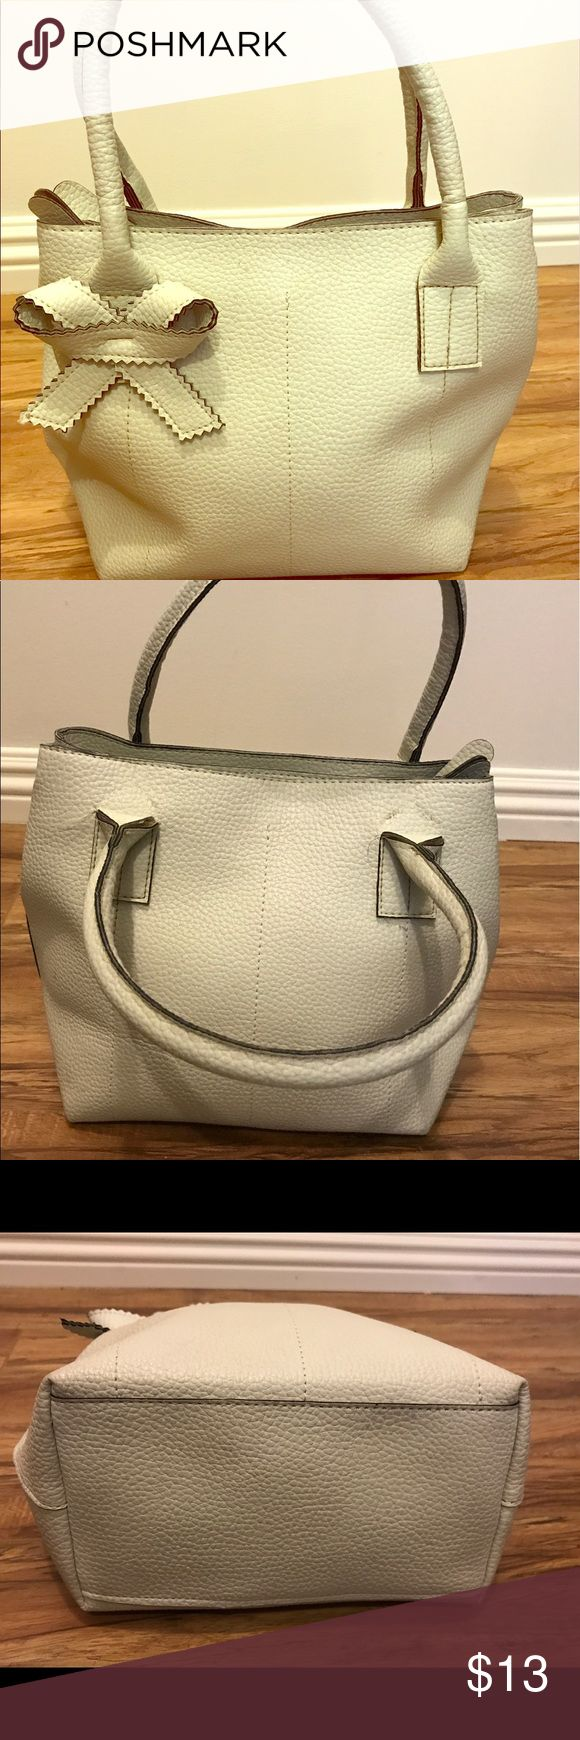 Secosana Cream Purse Used but Good Condition Bags Satchels